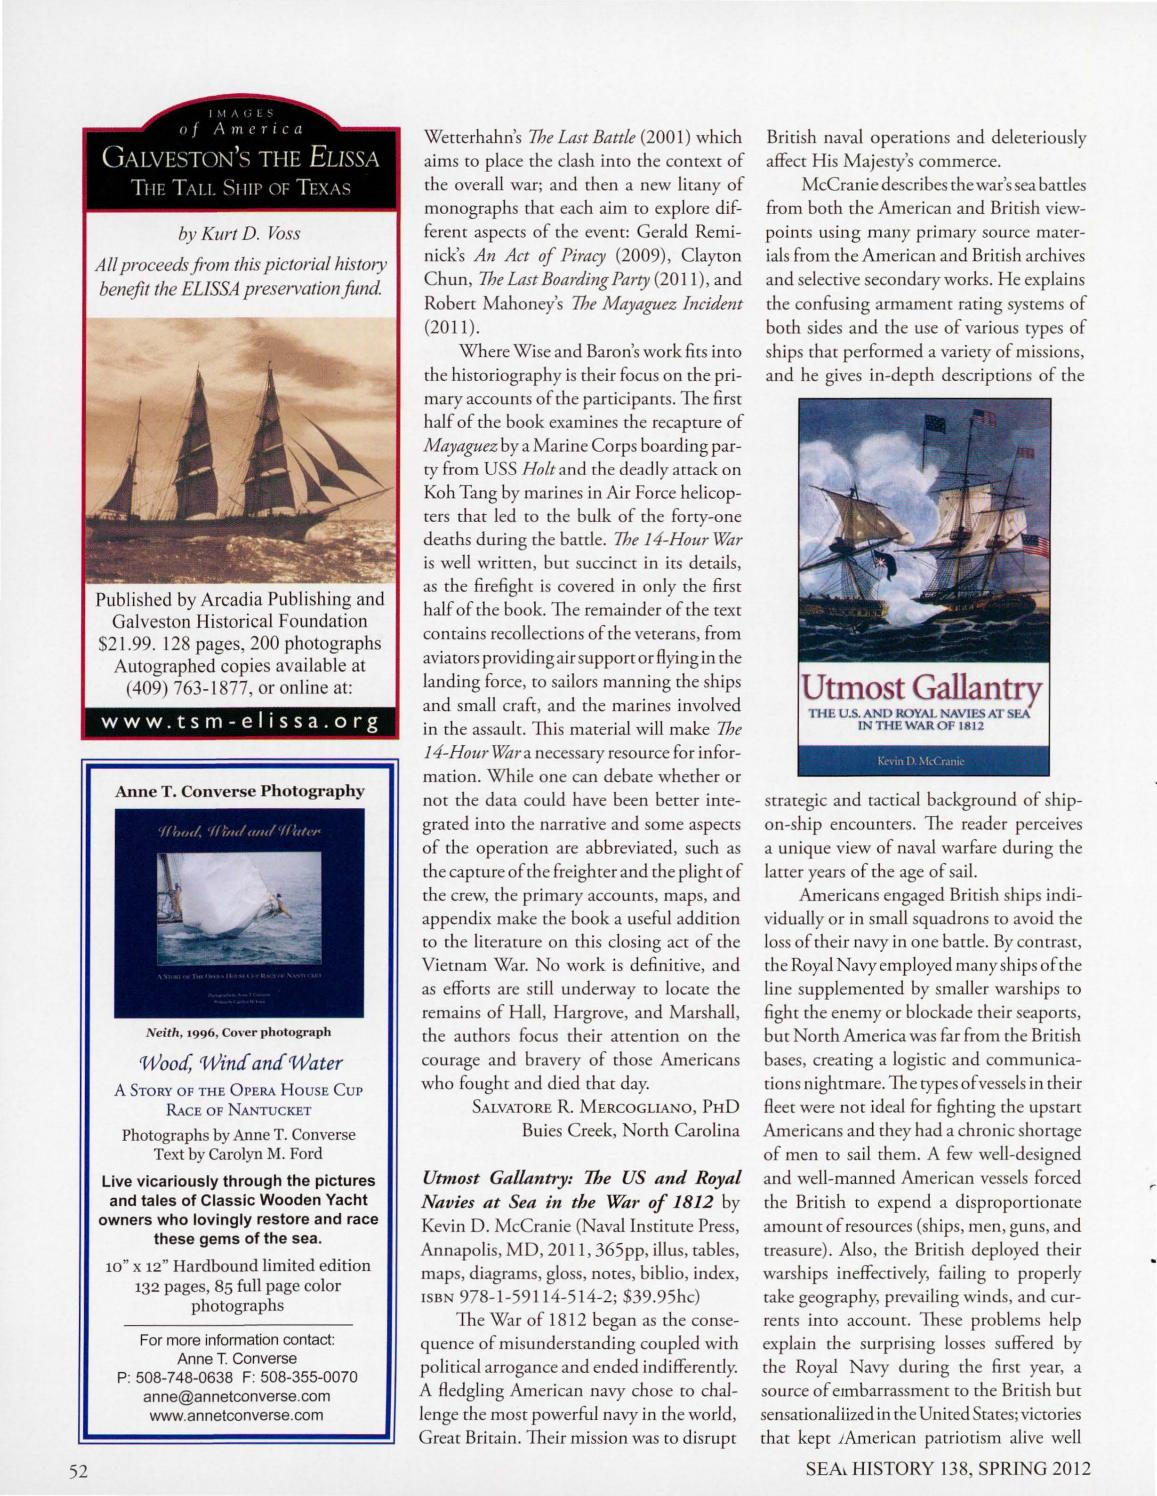 Sea History 138 - Spring 2012 by National Maritime Historical Society & Sea  History Magazine - issuu